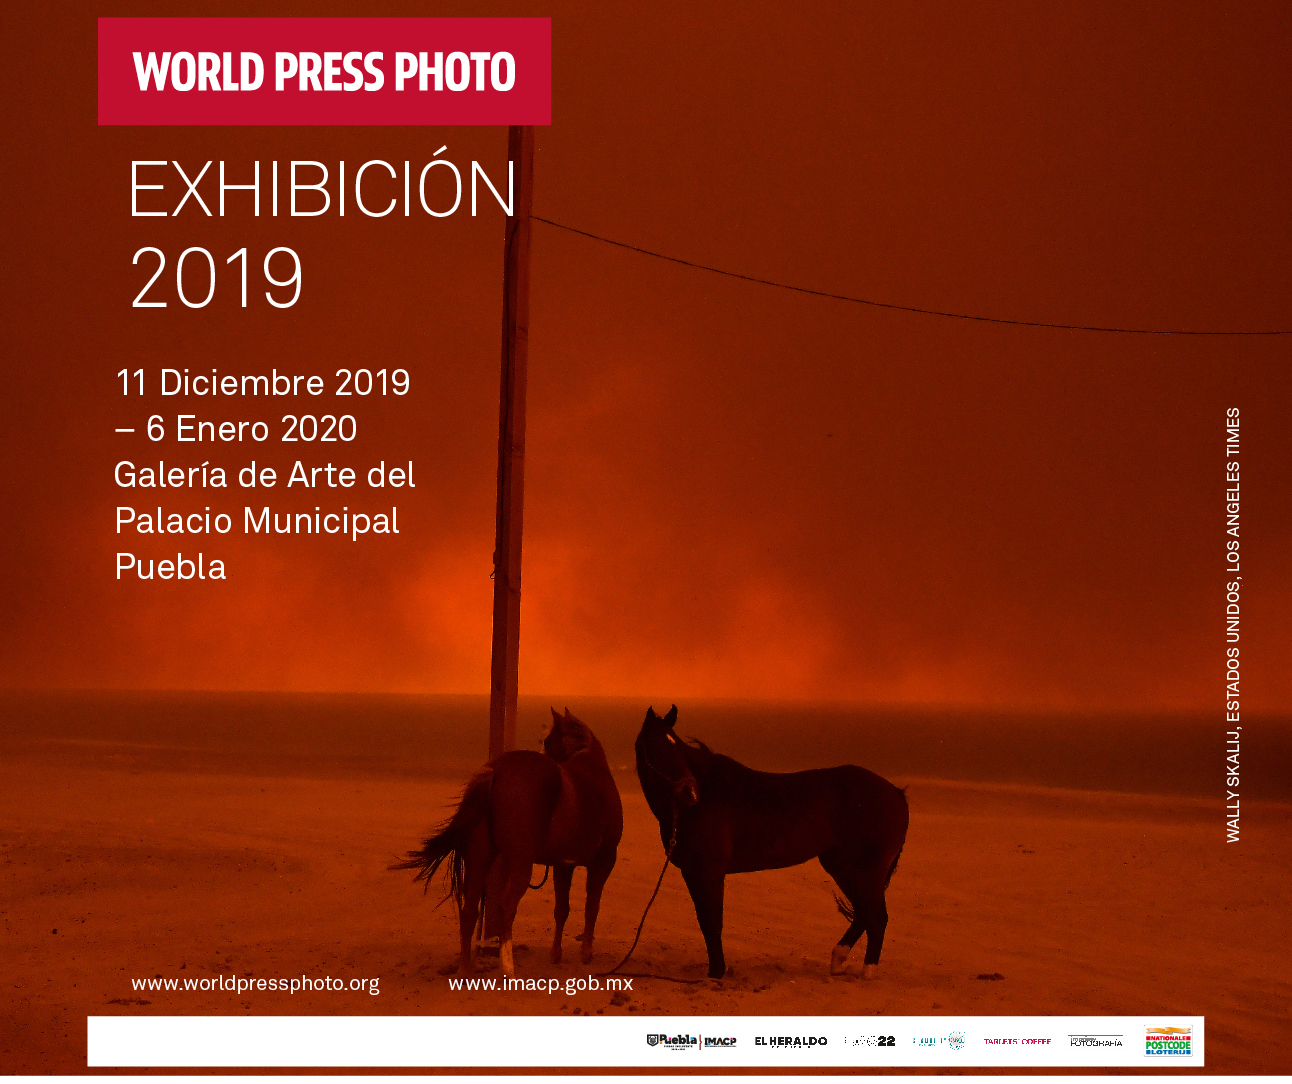 http://imacp.gob.mx/agenda/item/1132-world-press-photo